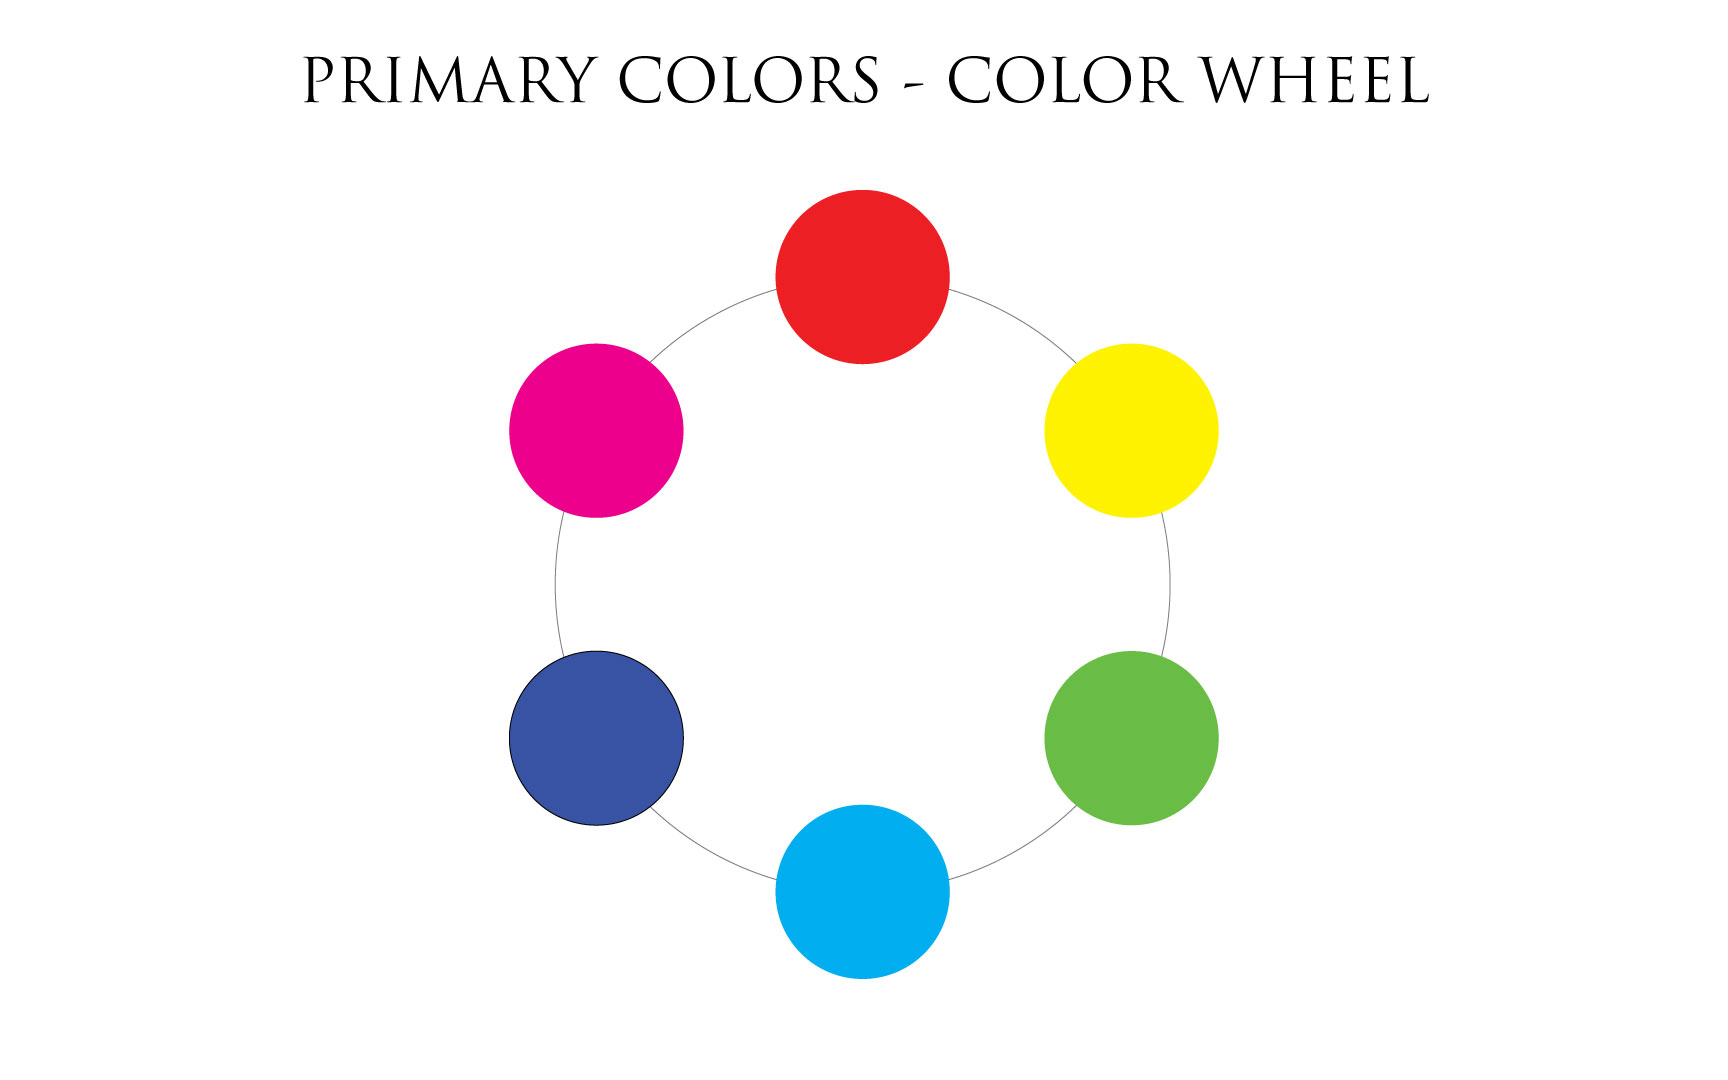 Primary colors, color wheel